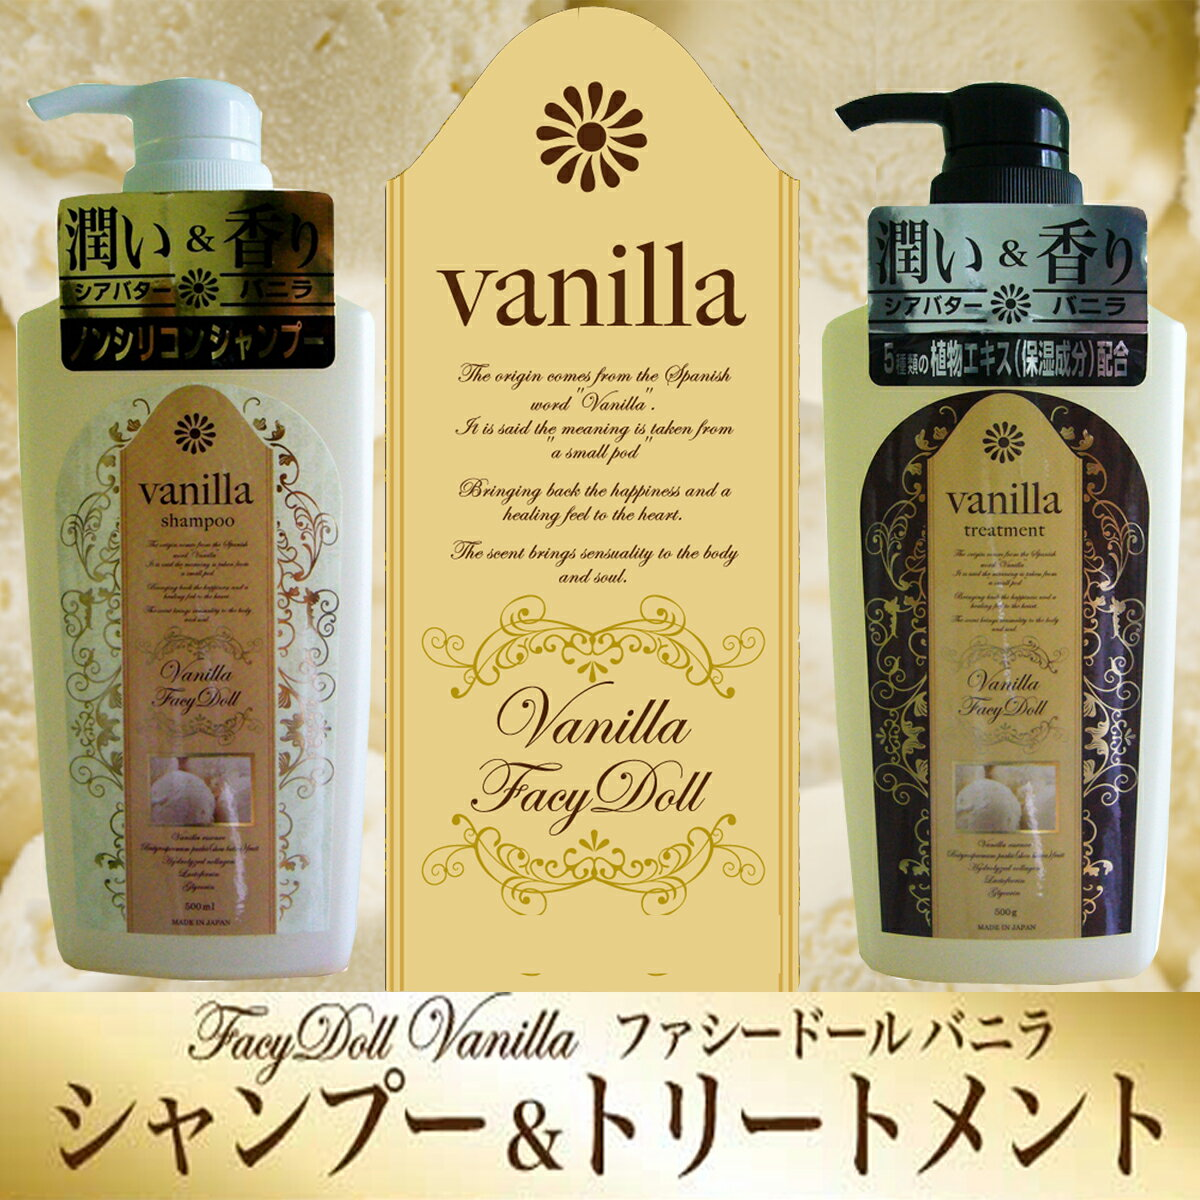 ファスィドール vanilla shampoo & treatment set